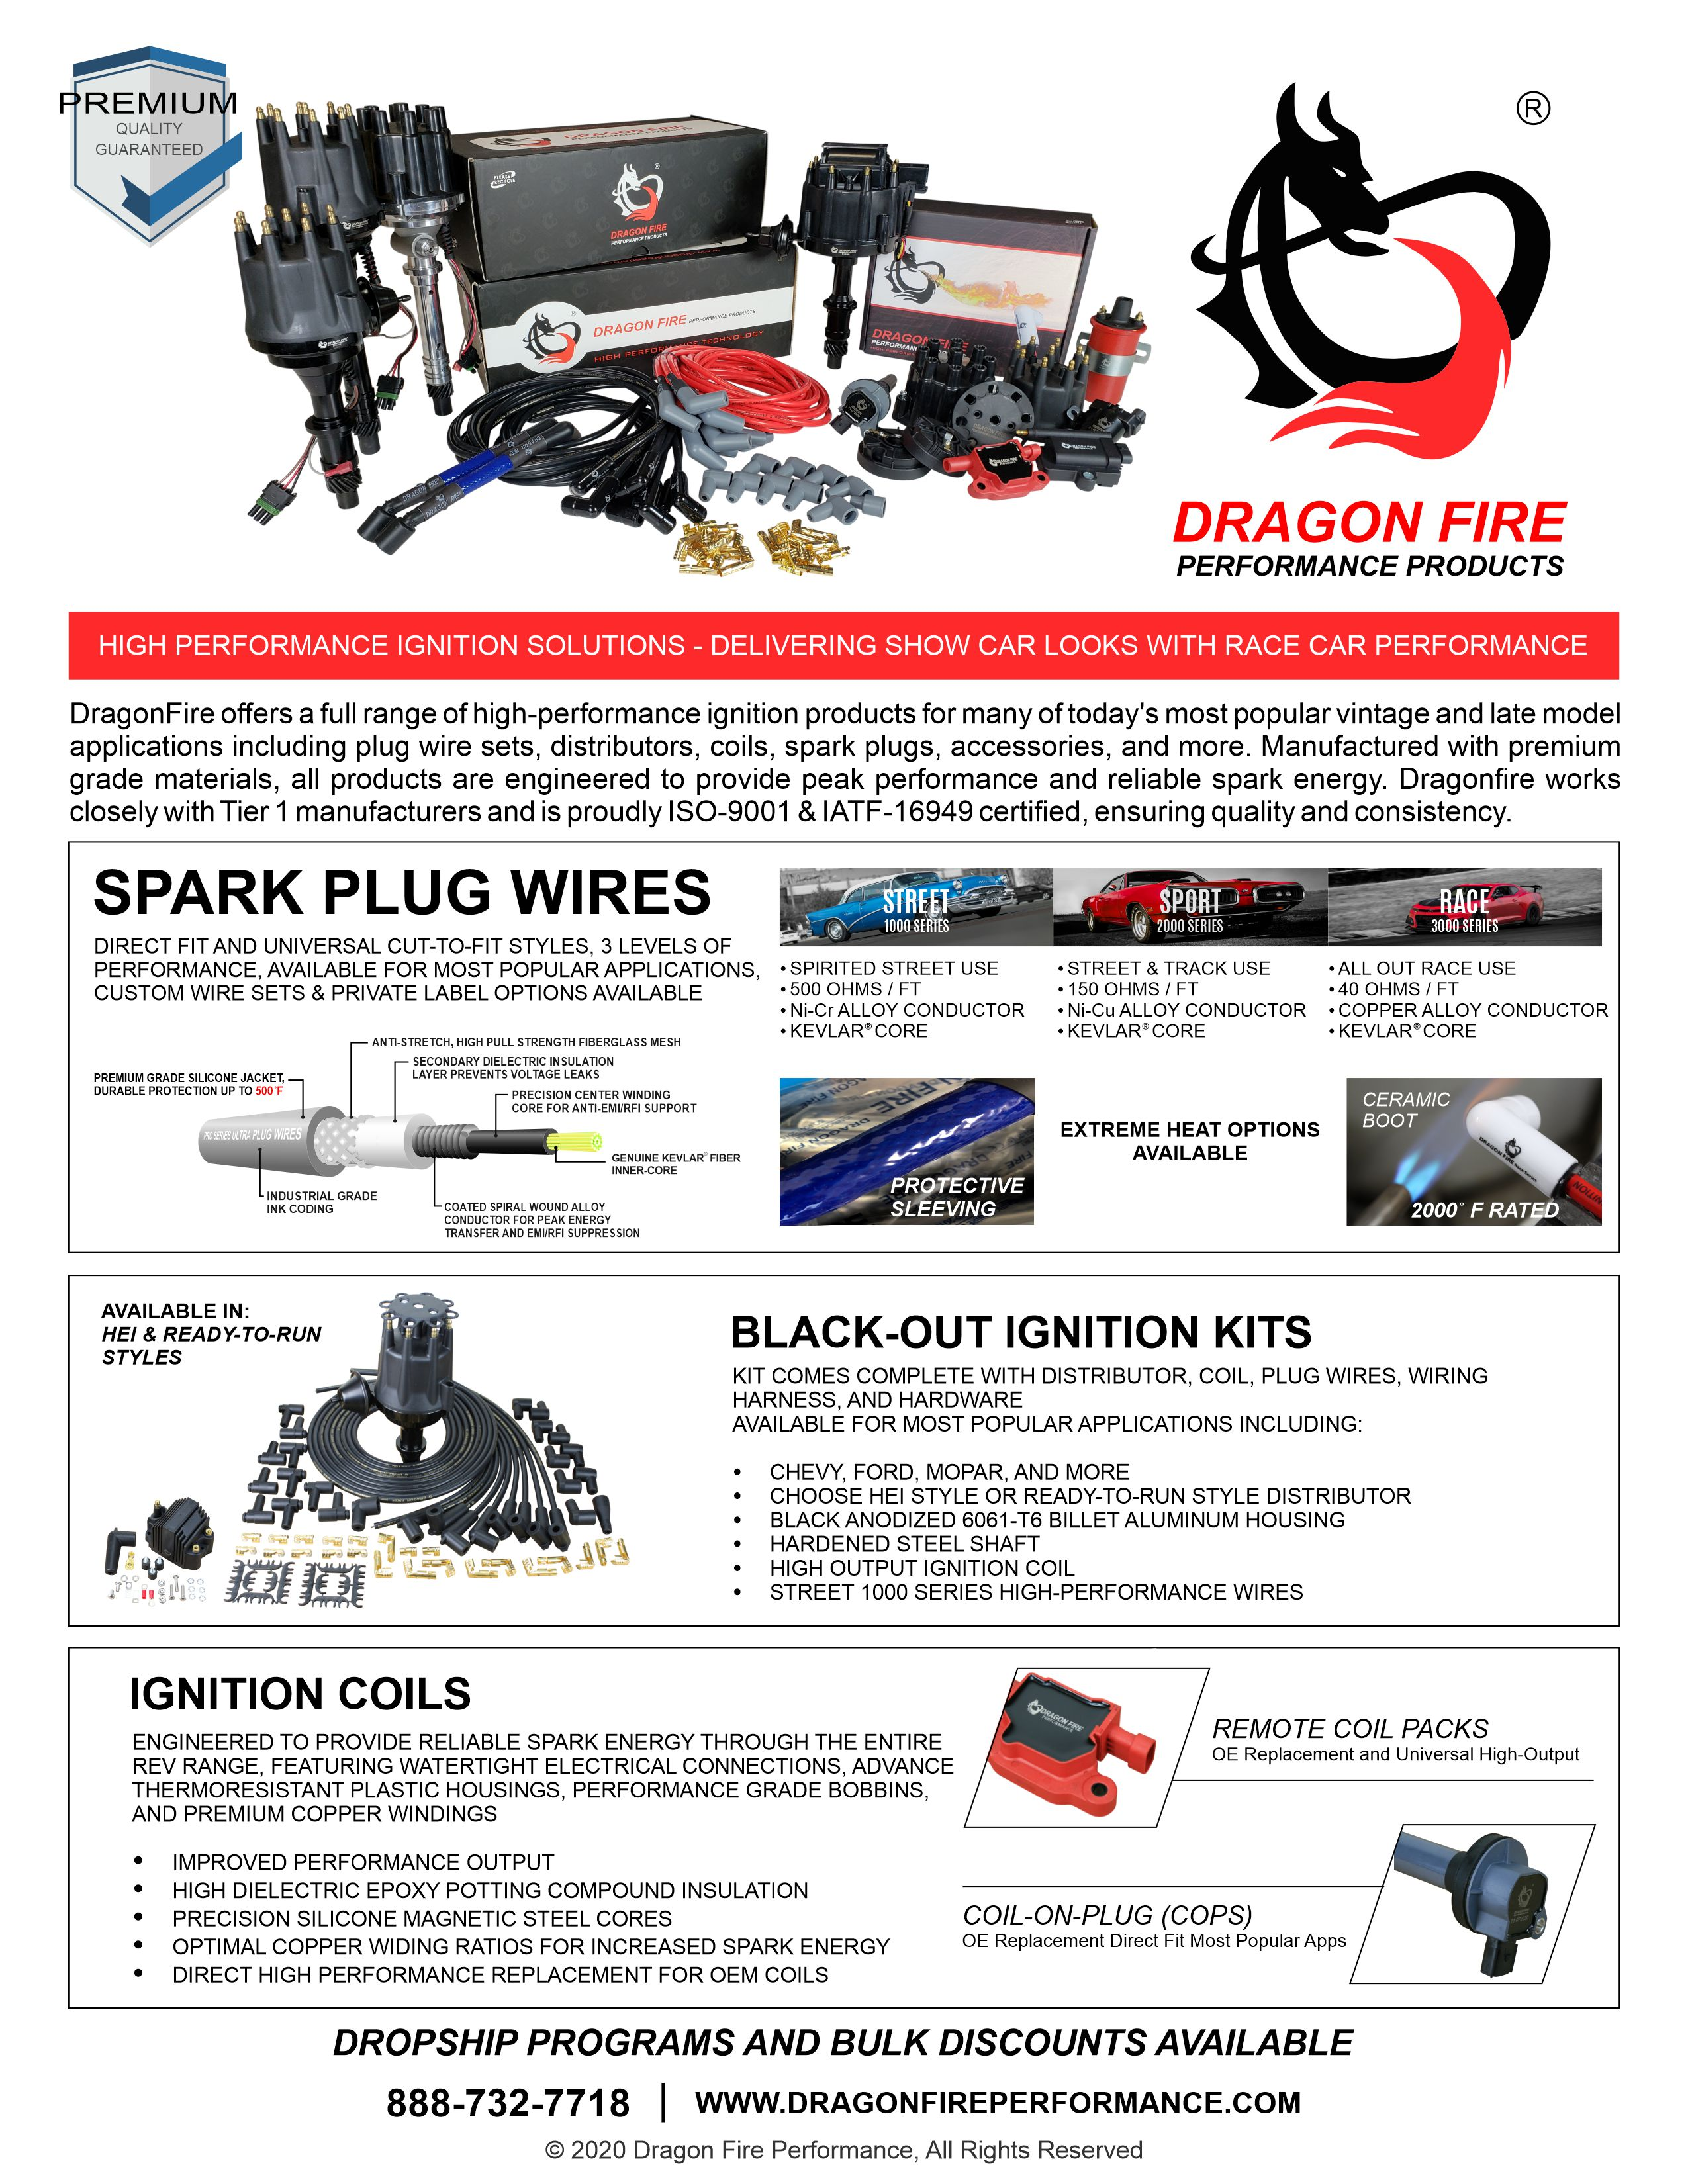 Hottest Ignition Products on the Market